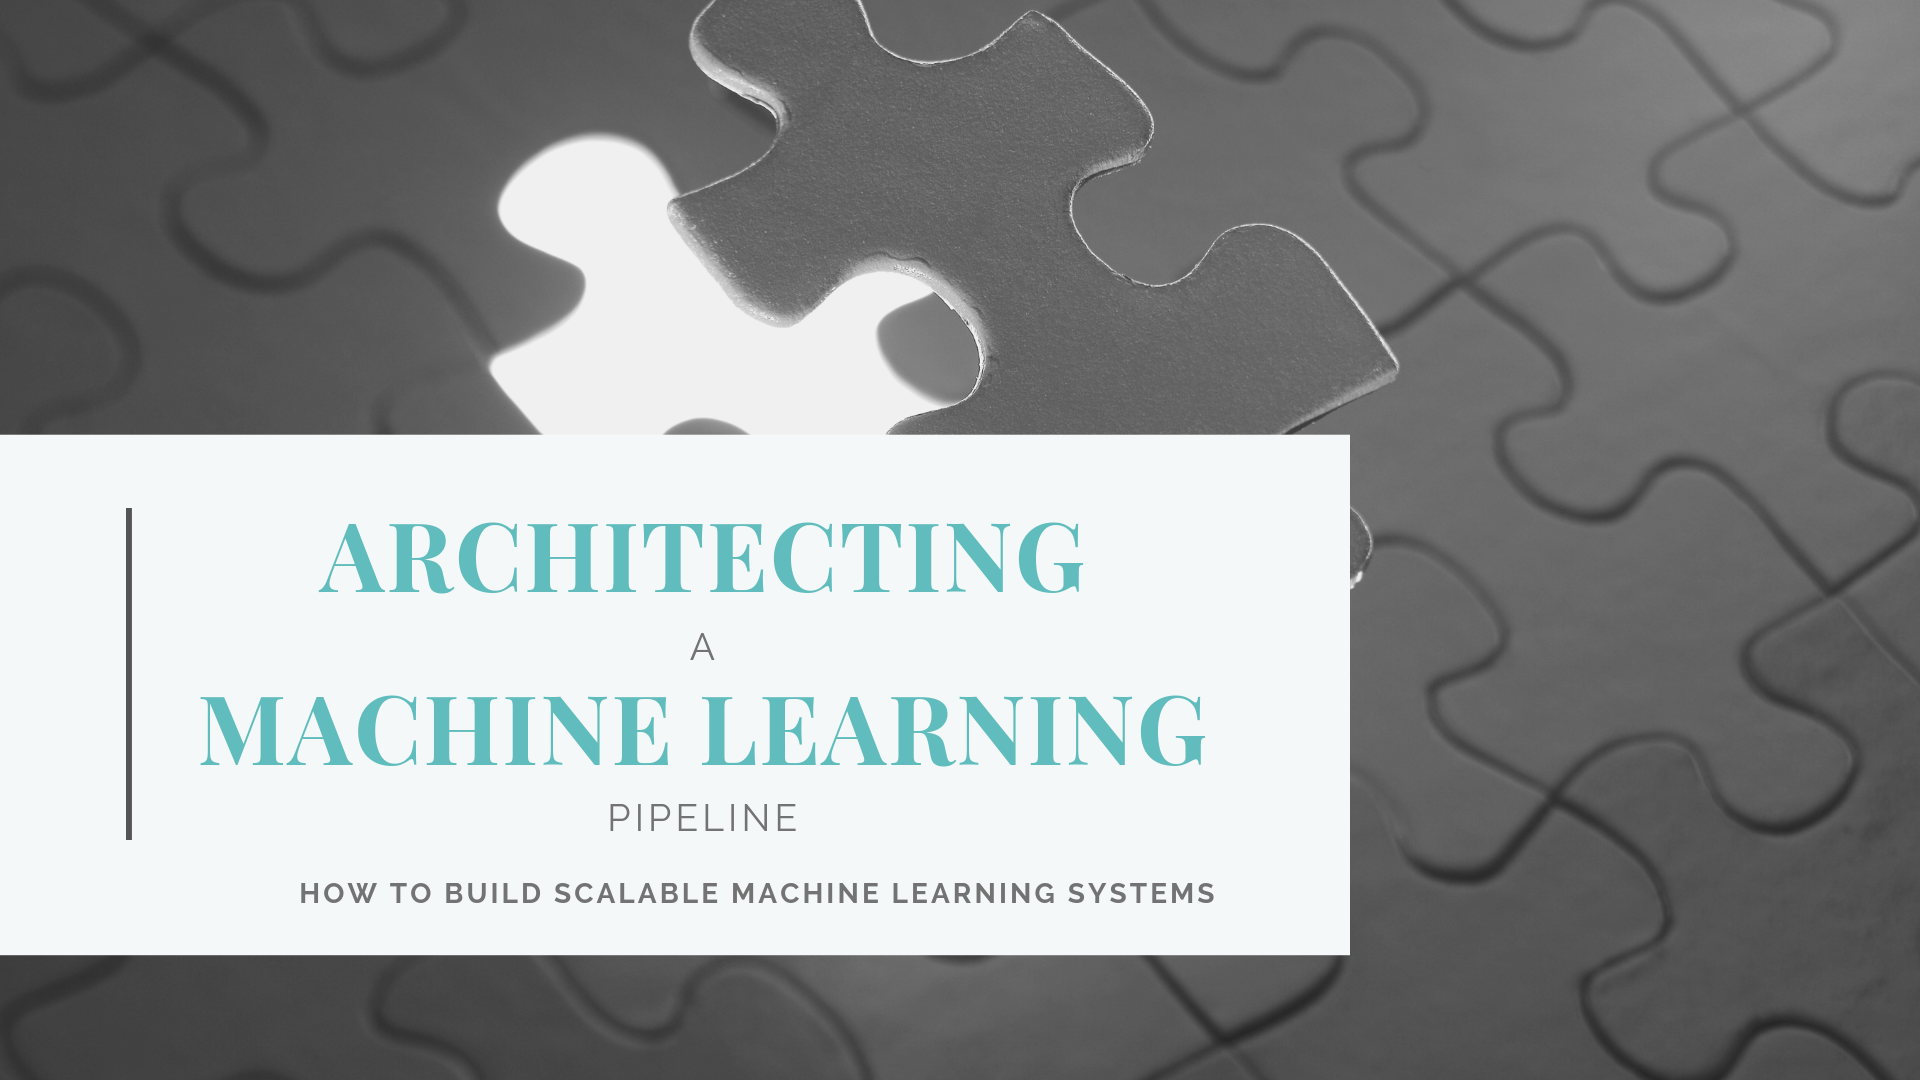 Architecting A Machine Learning Pipeline Towards Data Science